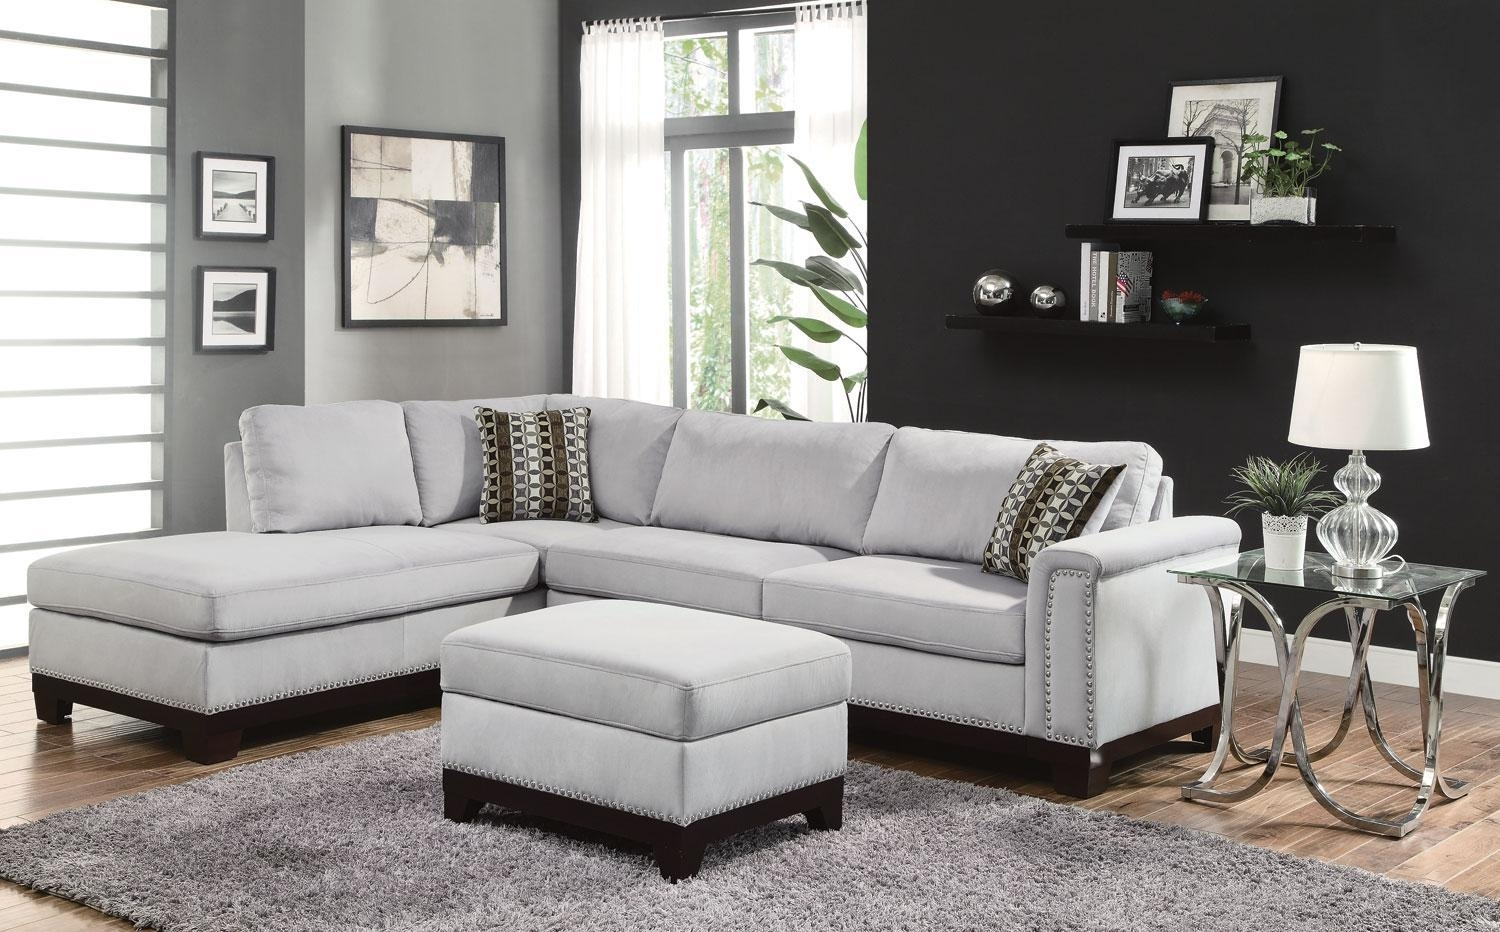 Sectional Sofa With Nailhead Trim | Best Sofas Ideas – Sofascouch Pertaining To Sectional Sofas With Nailhead Trim (Image 6 of 10)